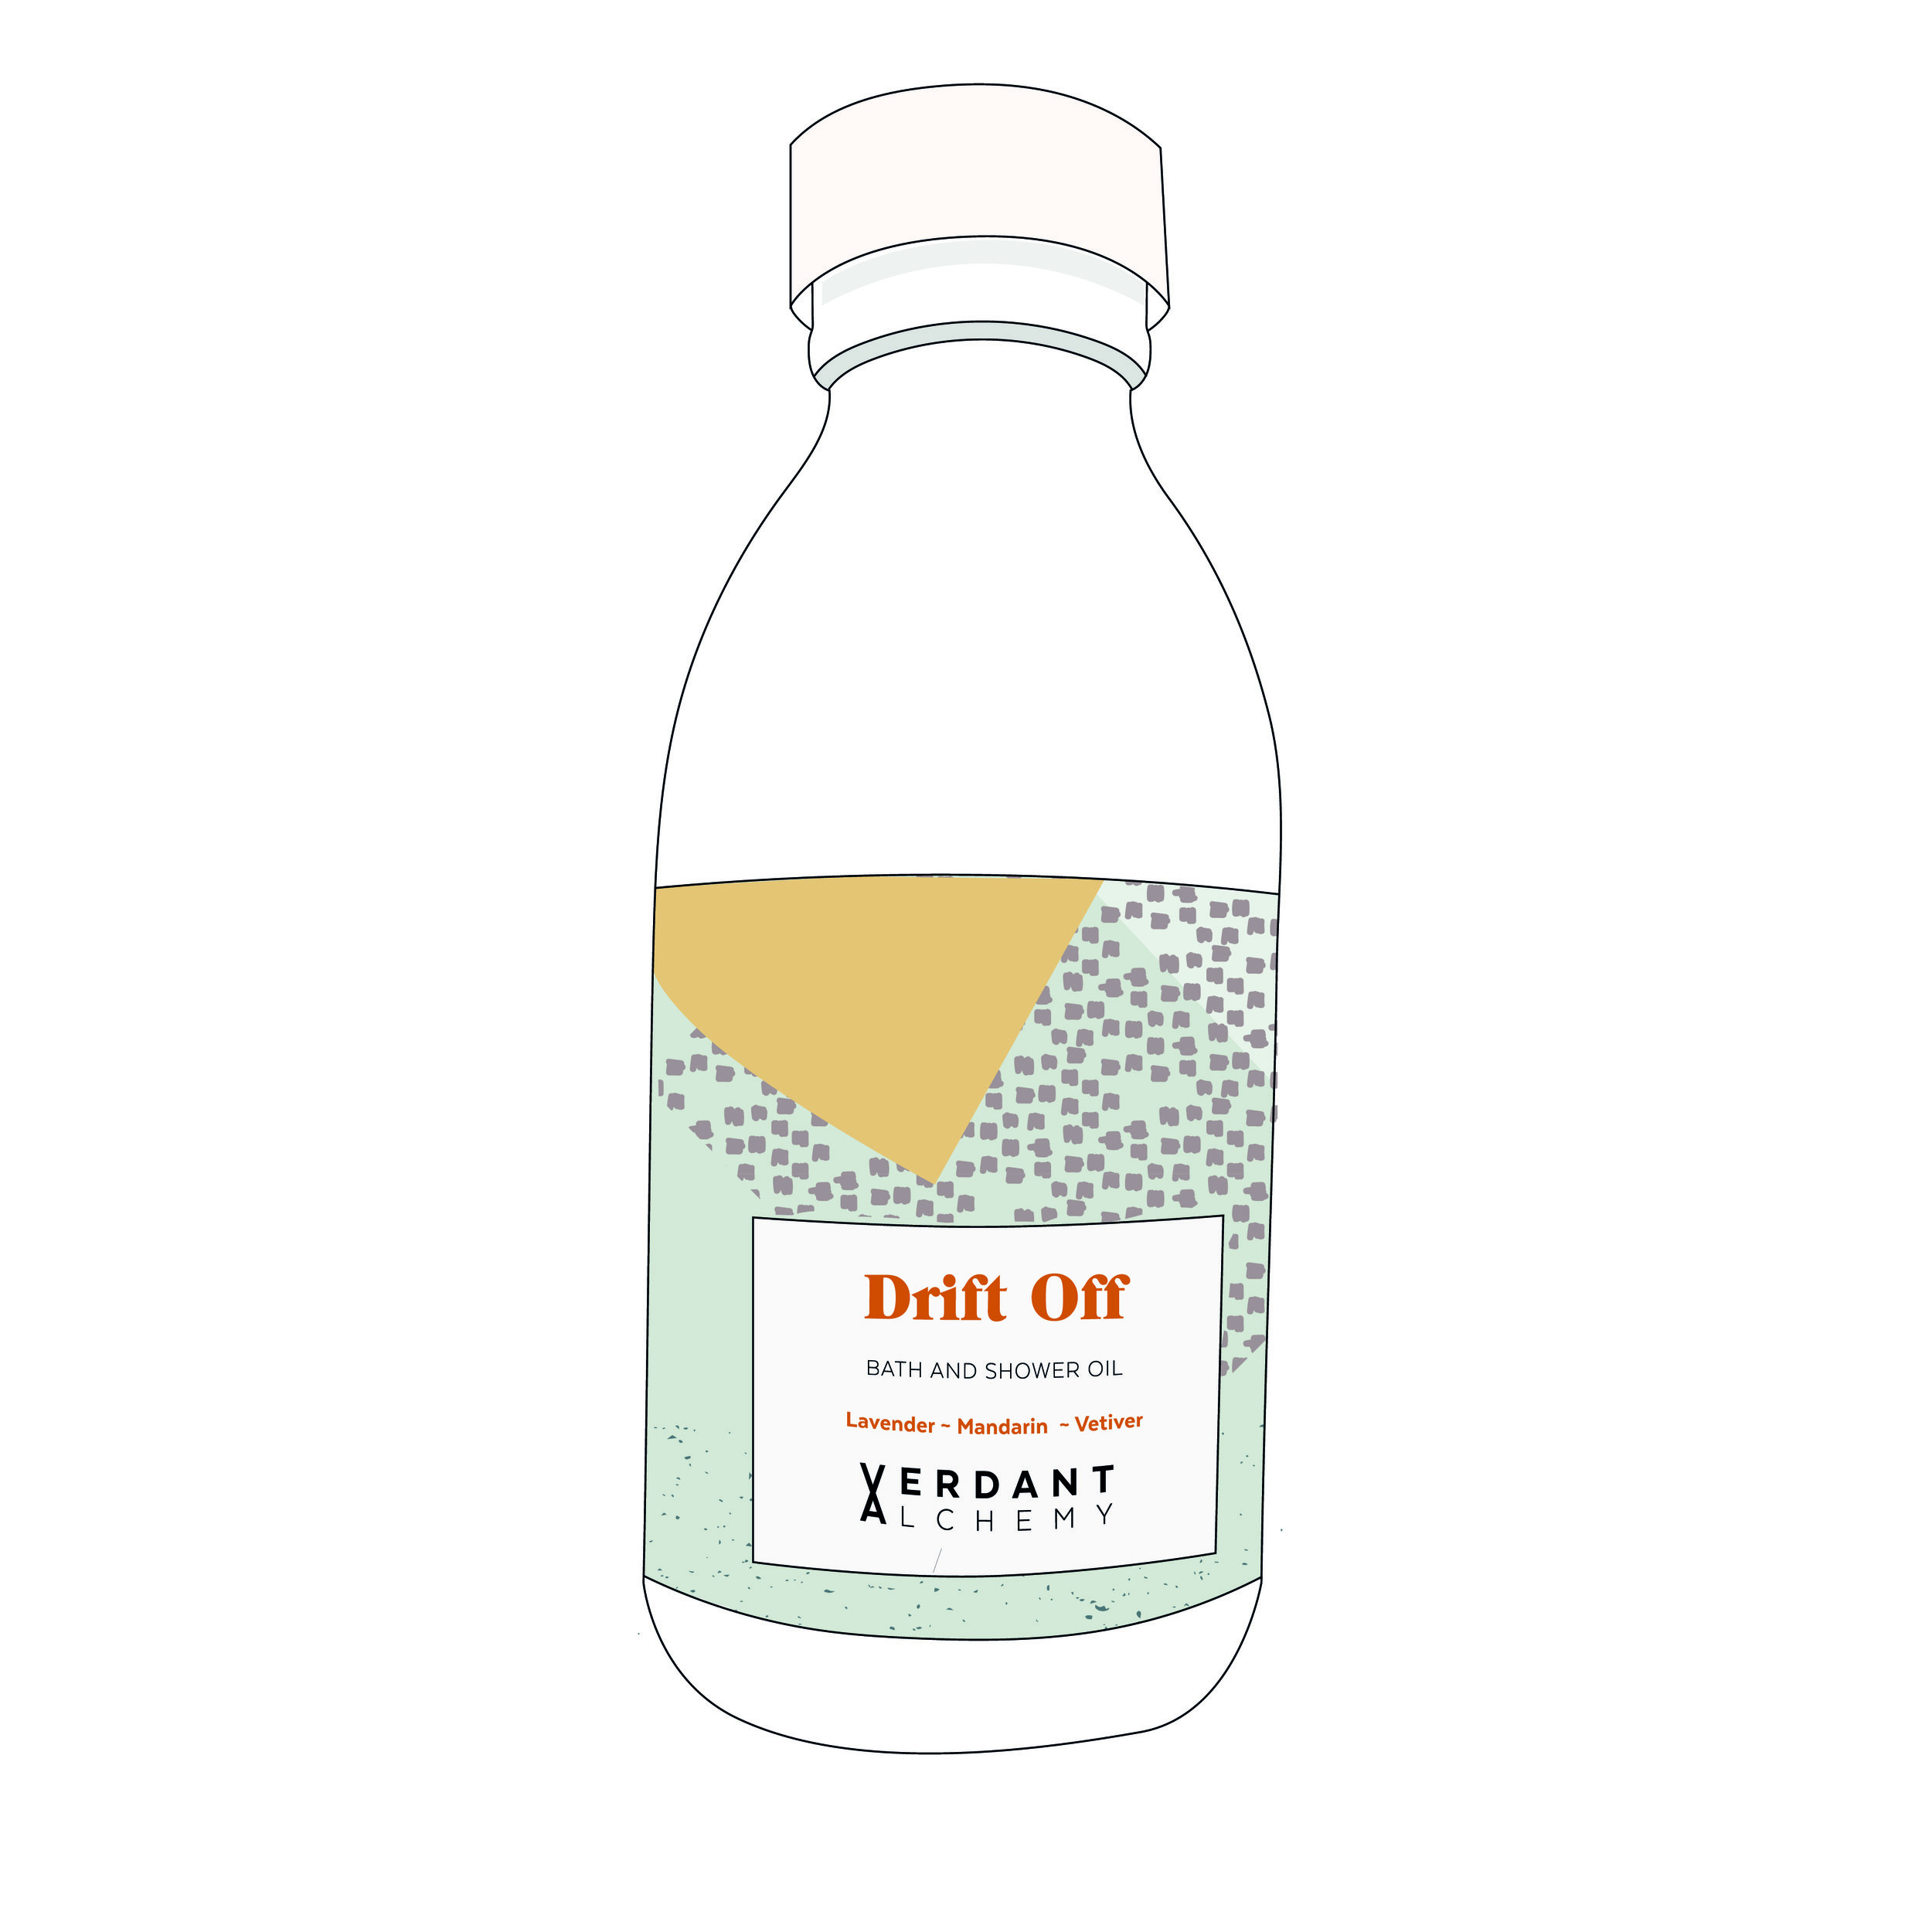 drift off bath and shower oil -01-01.jpg